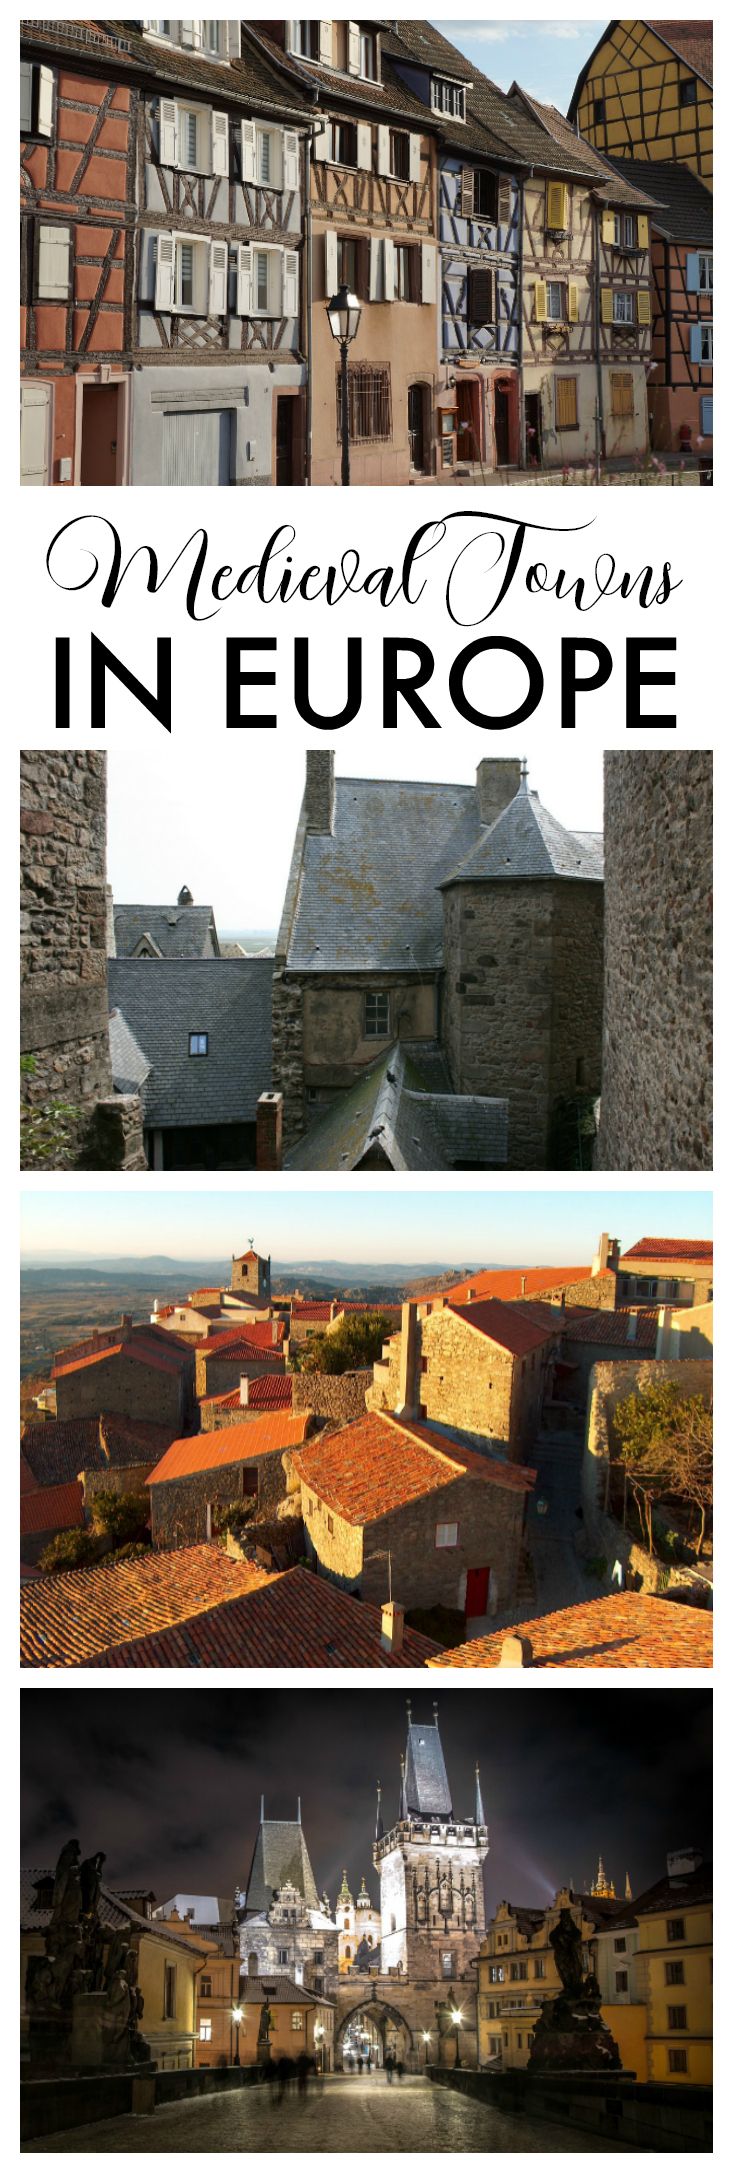 Medieval Towns in Europe